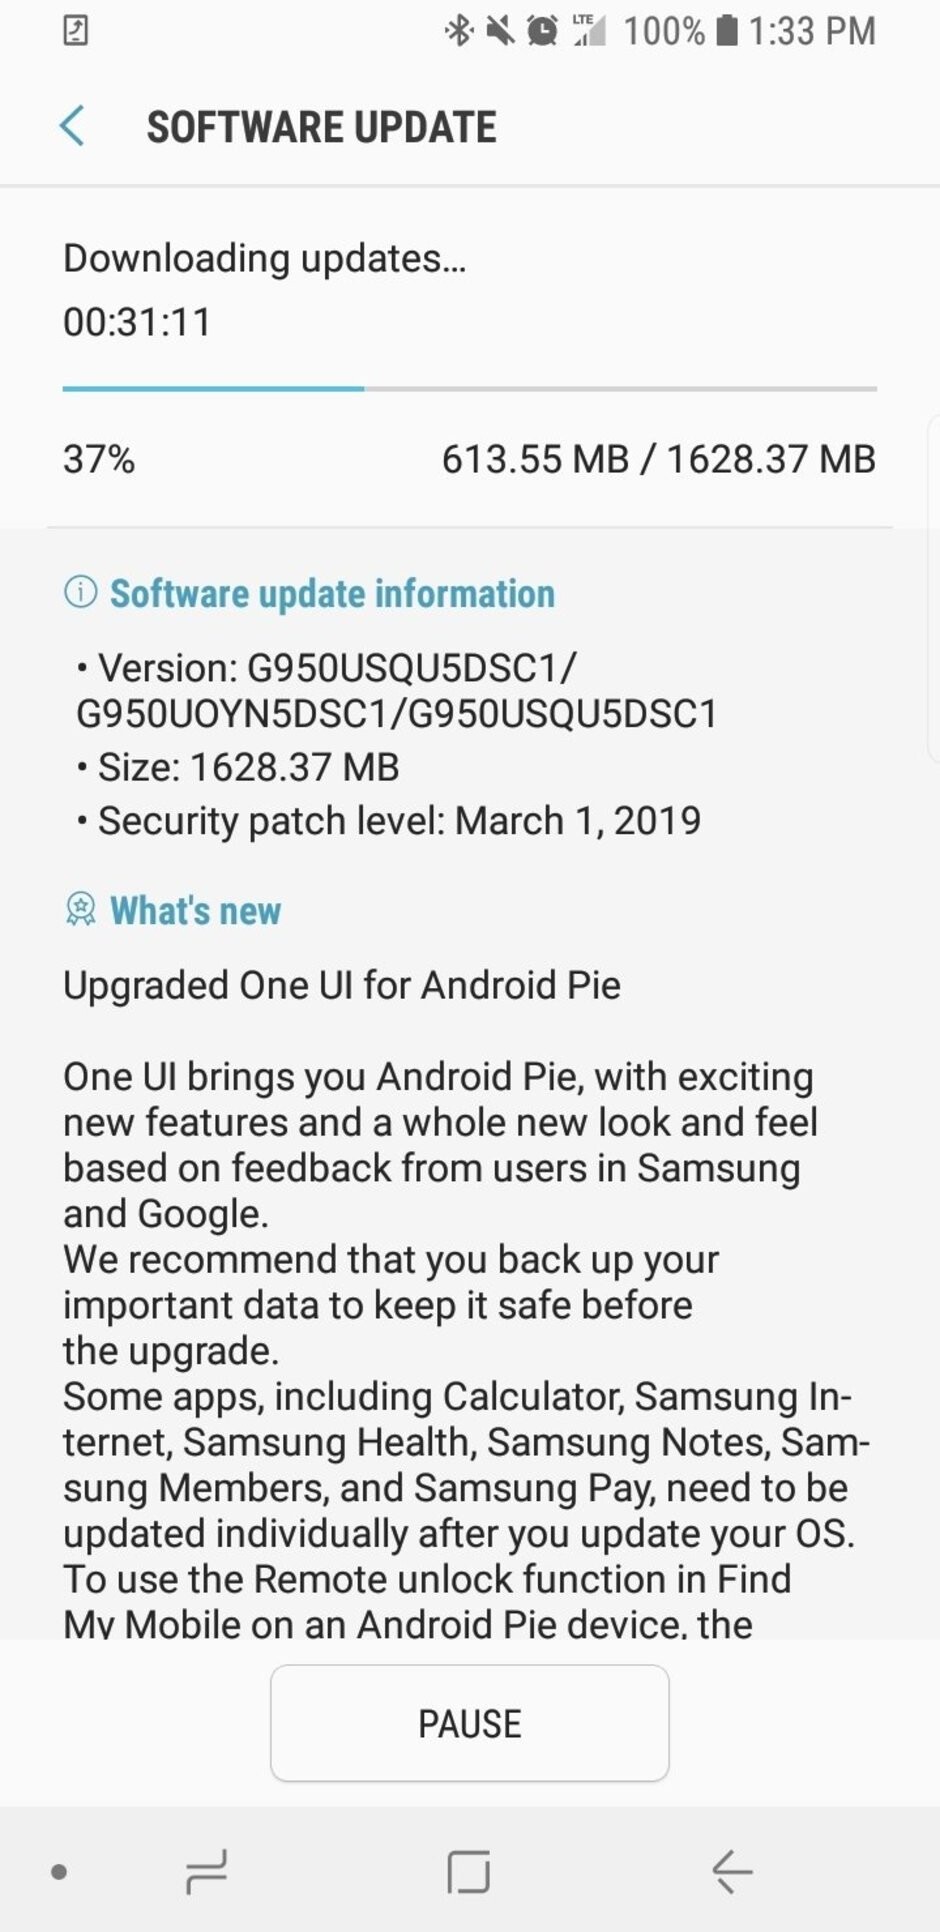 Another US carrier starts rolling out Android 9.0 Pie for Samsung Galaxy S8/S8+